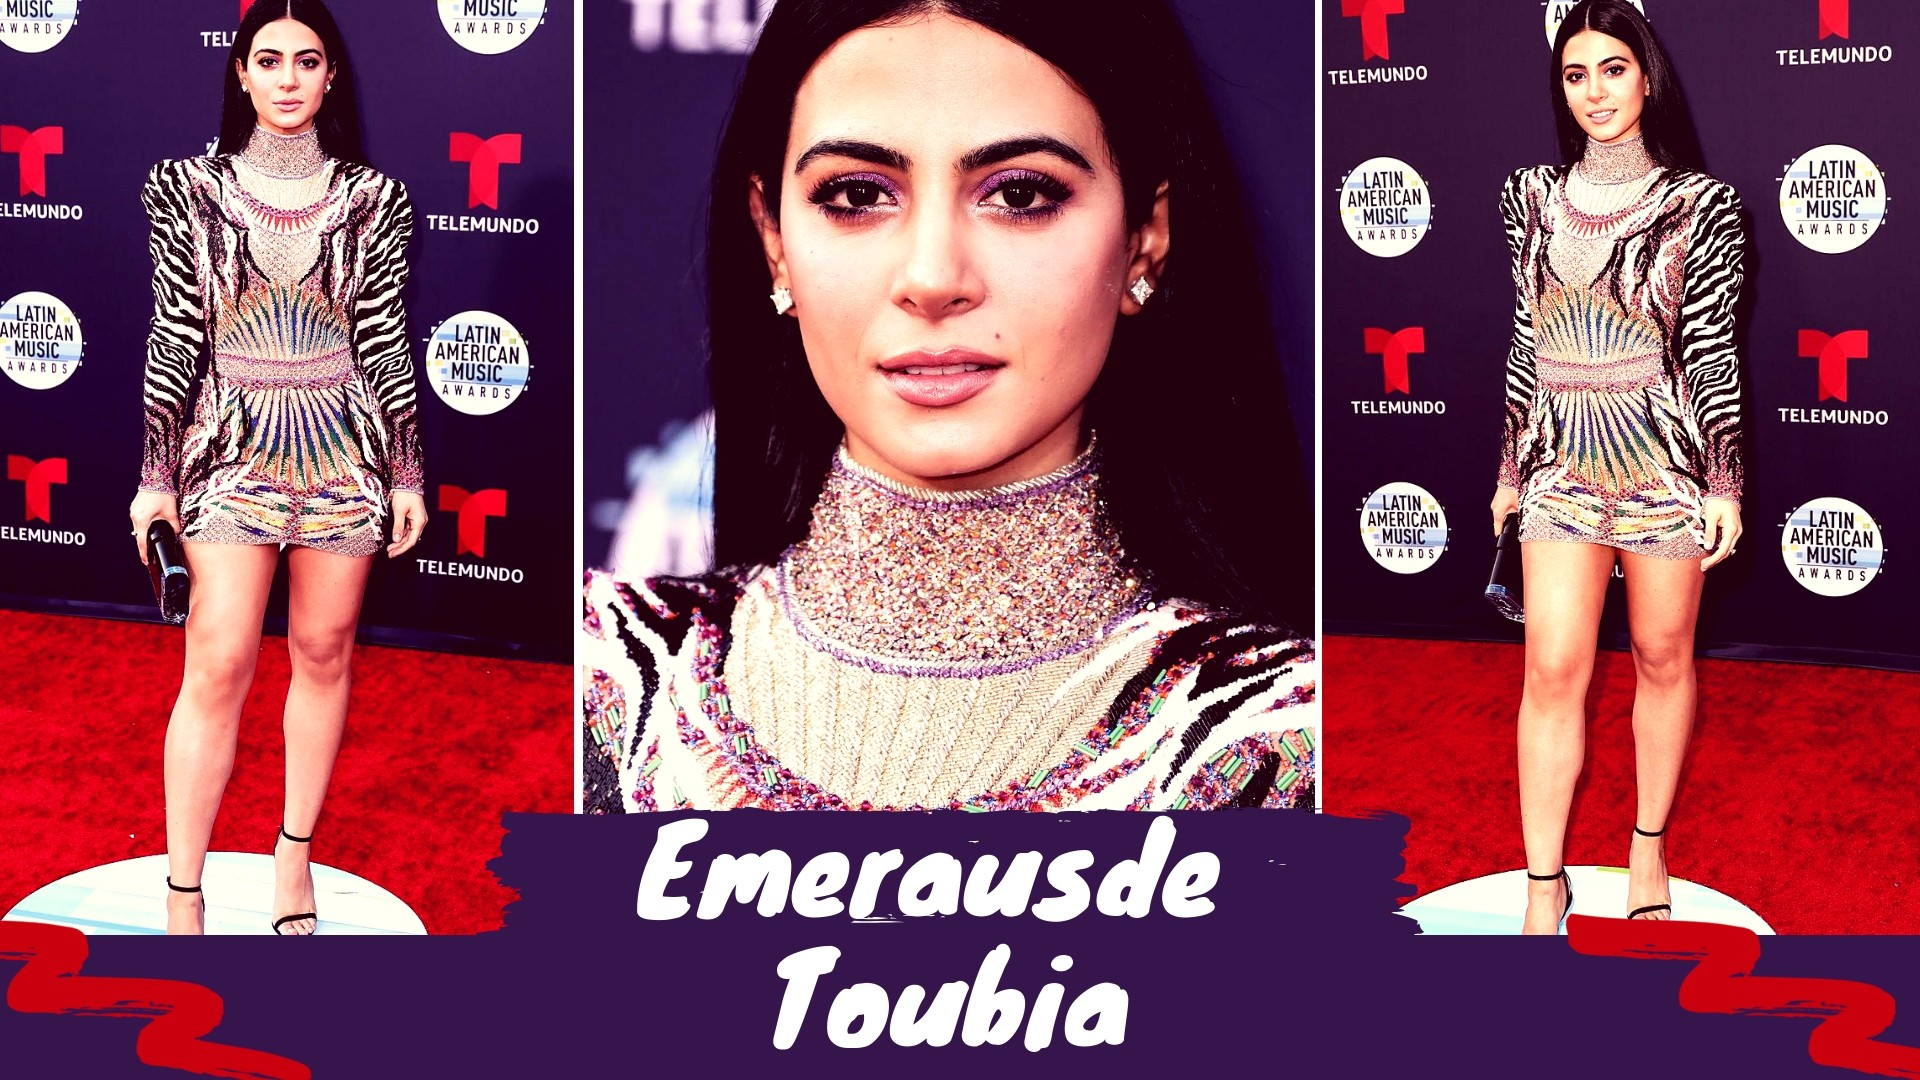 Emeraude Toubia at the Latin America Awards 2018 - Sexy Actress Pictures | Hot Actress Pictures - ActressSnaps.com